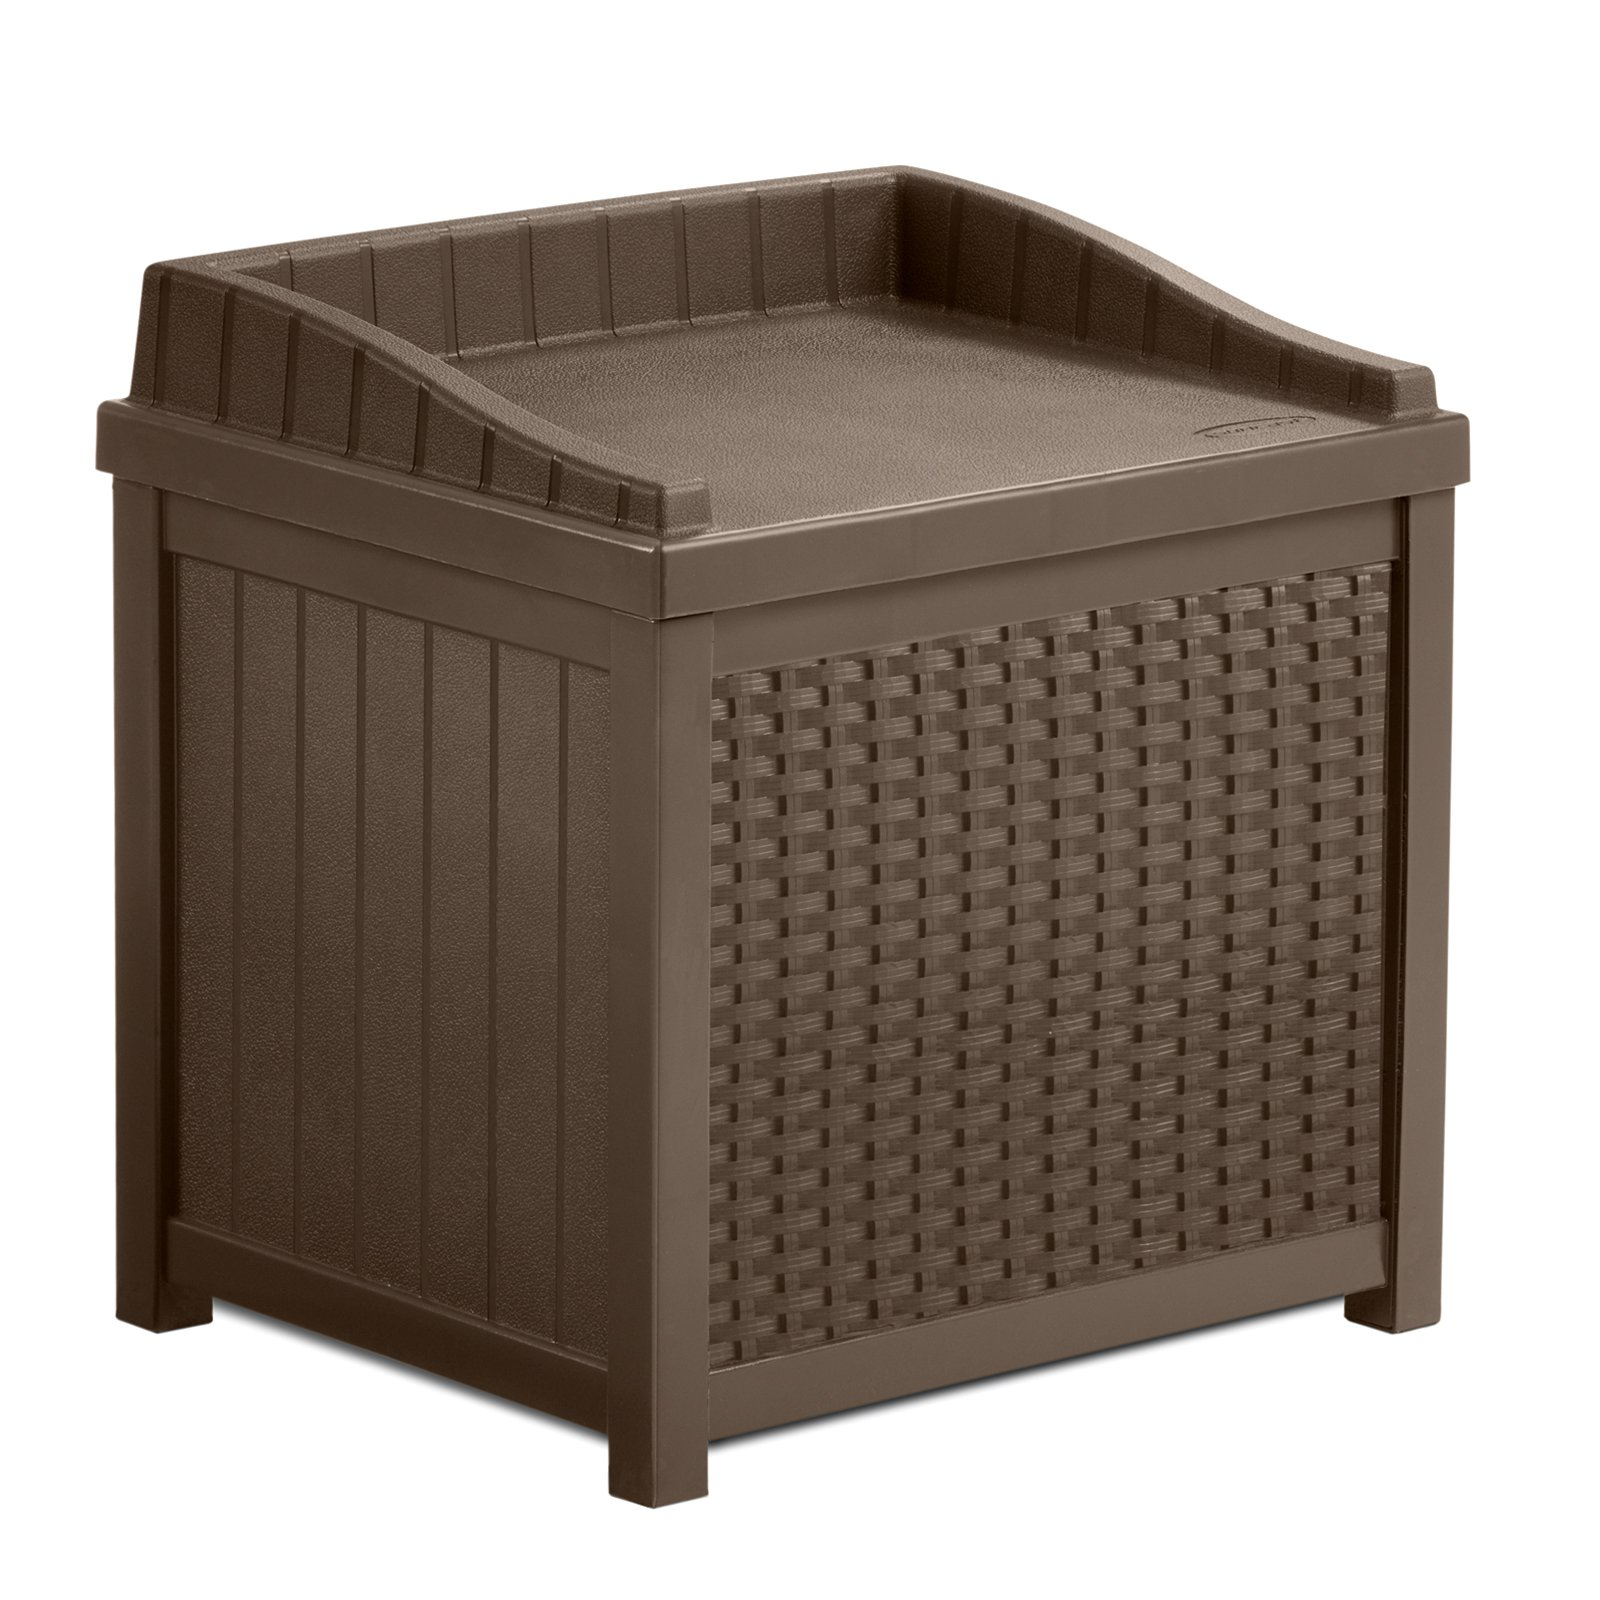 Product Image Suncast 22 Gallon Java Resin Wicker Small Storage Seat Deck  Box SSW1200